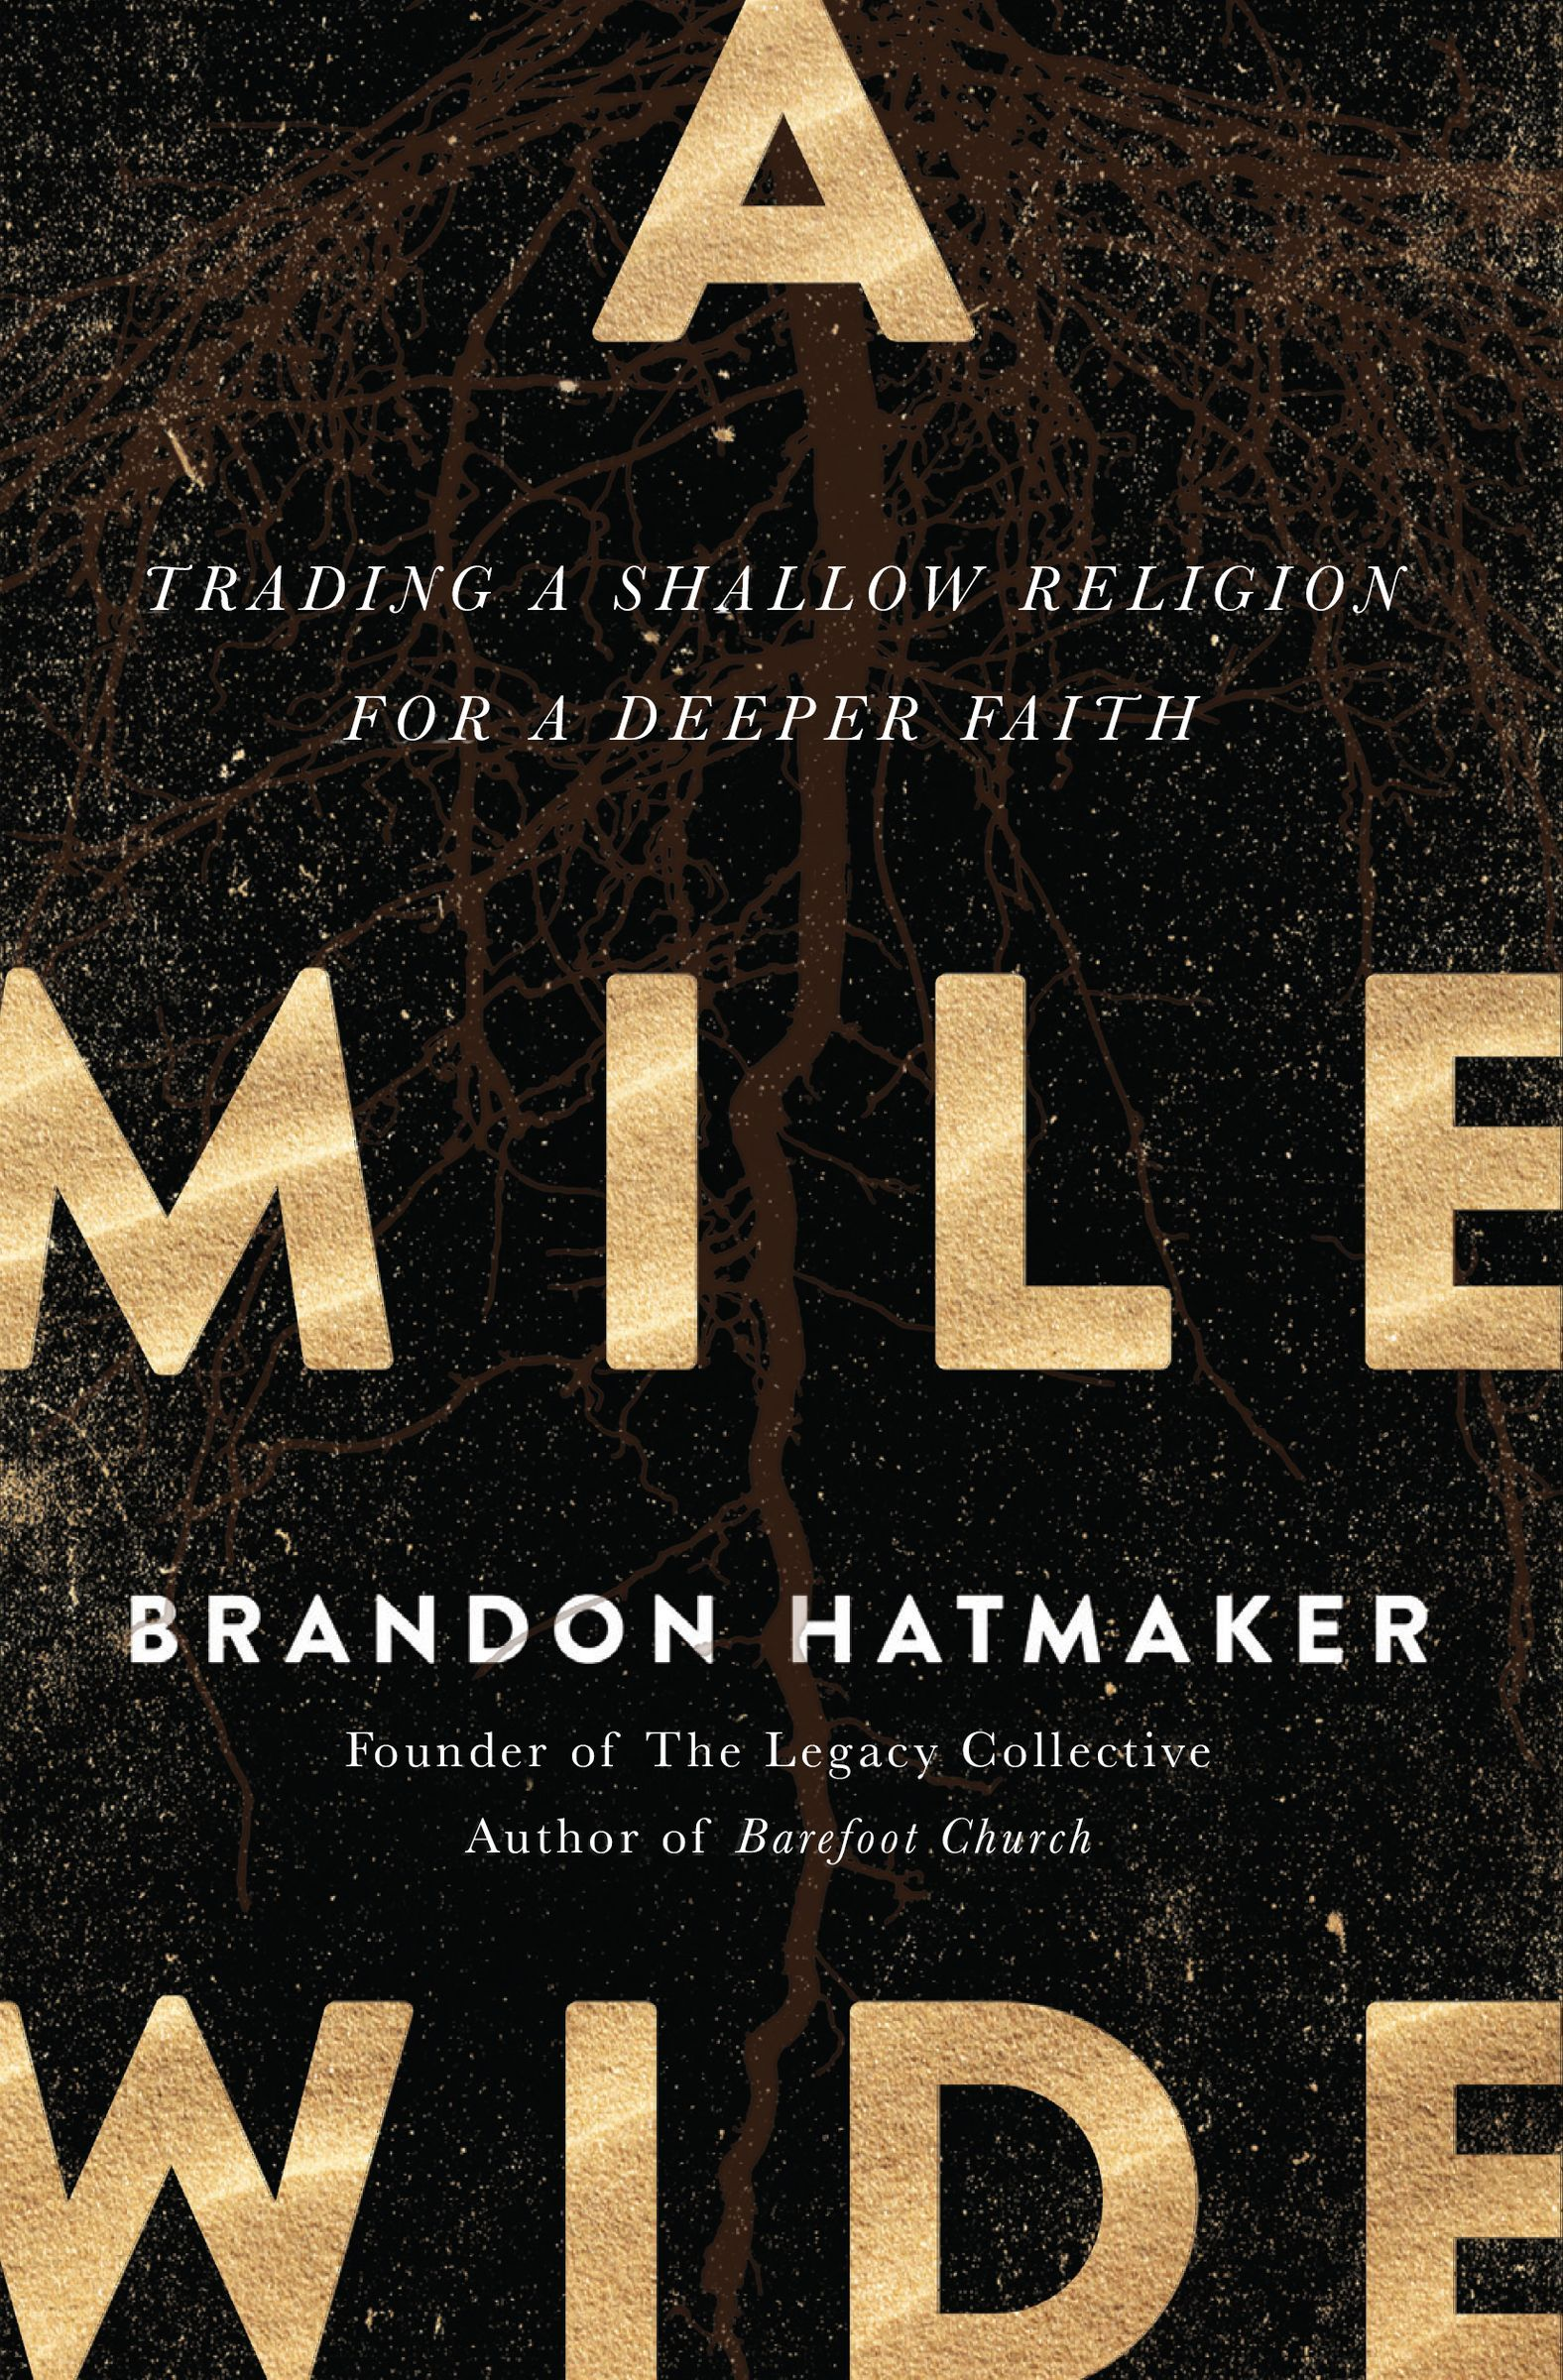 A Mile Wide  Trading a Shallow Religion for a Deeper Faith